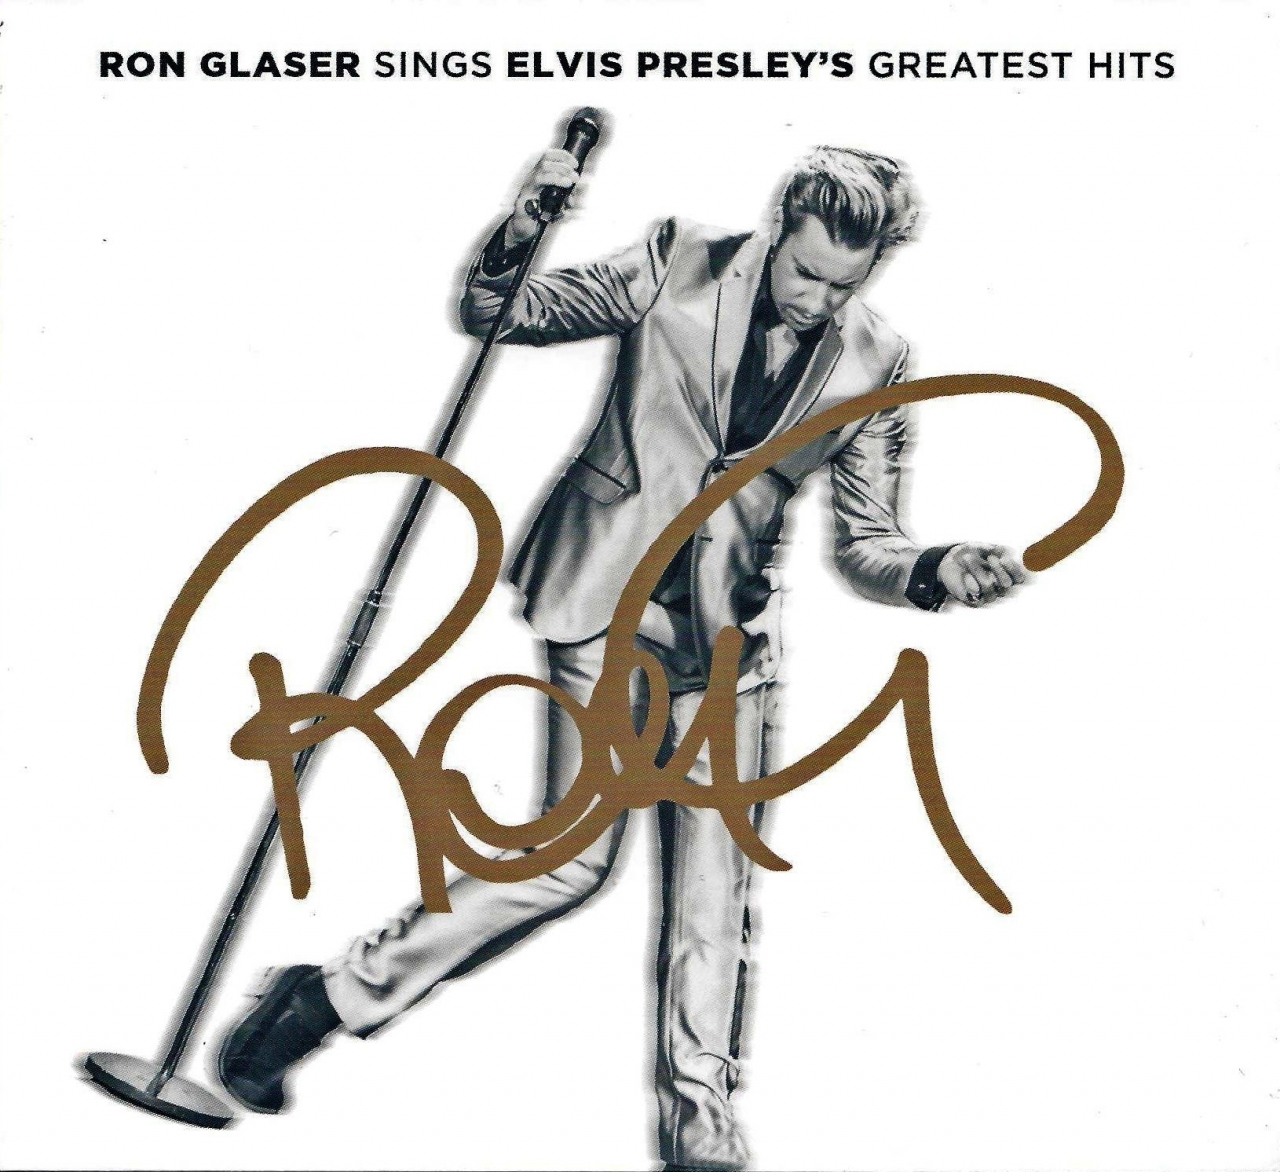 RON GLASER singt Elvis Presses' greatest hits